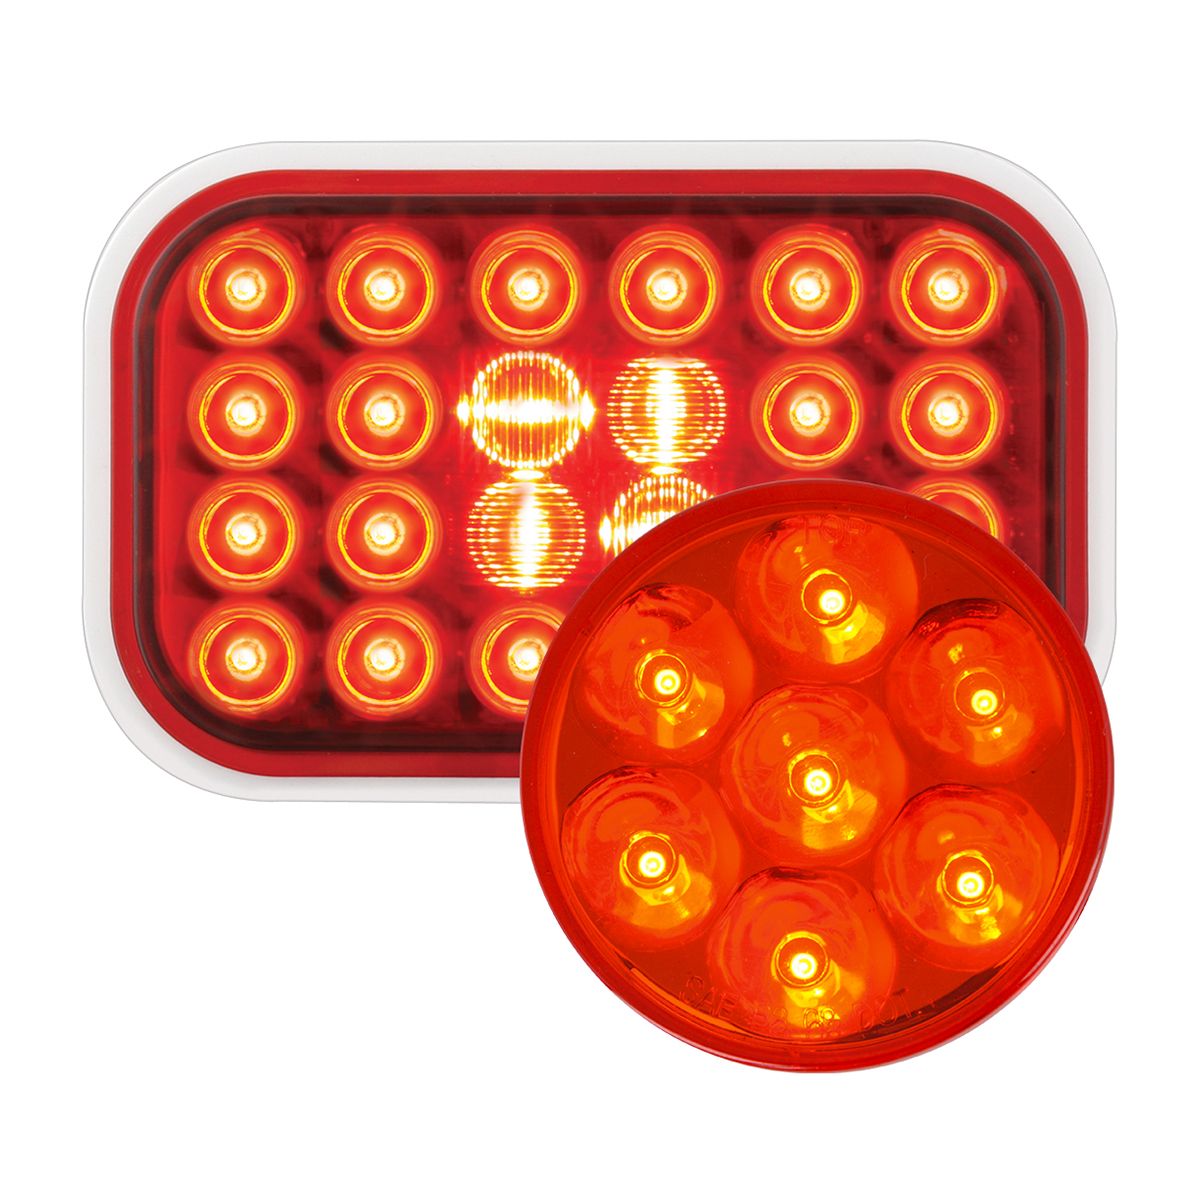 #77182/#76542 Pearl LED Flat Light - Red/Red